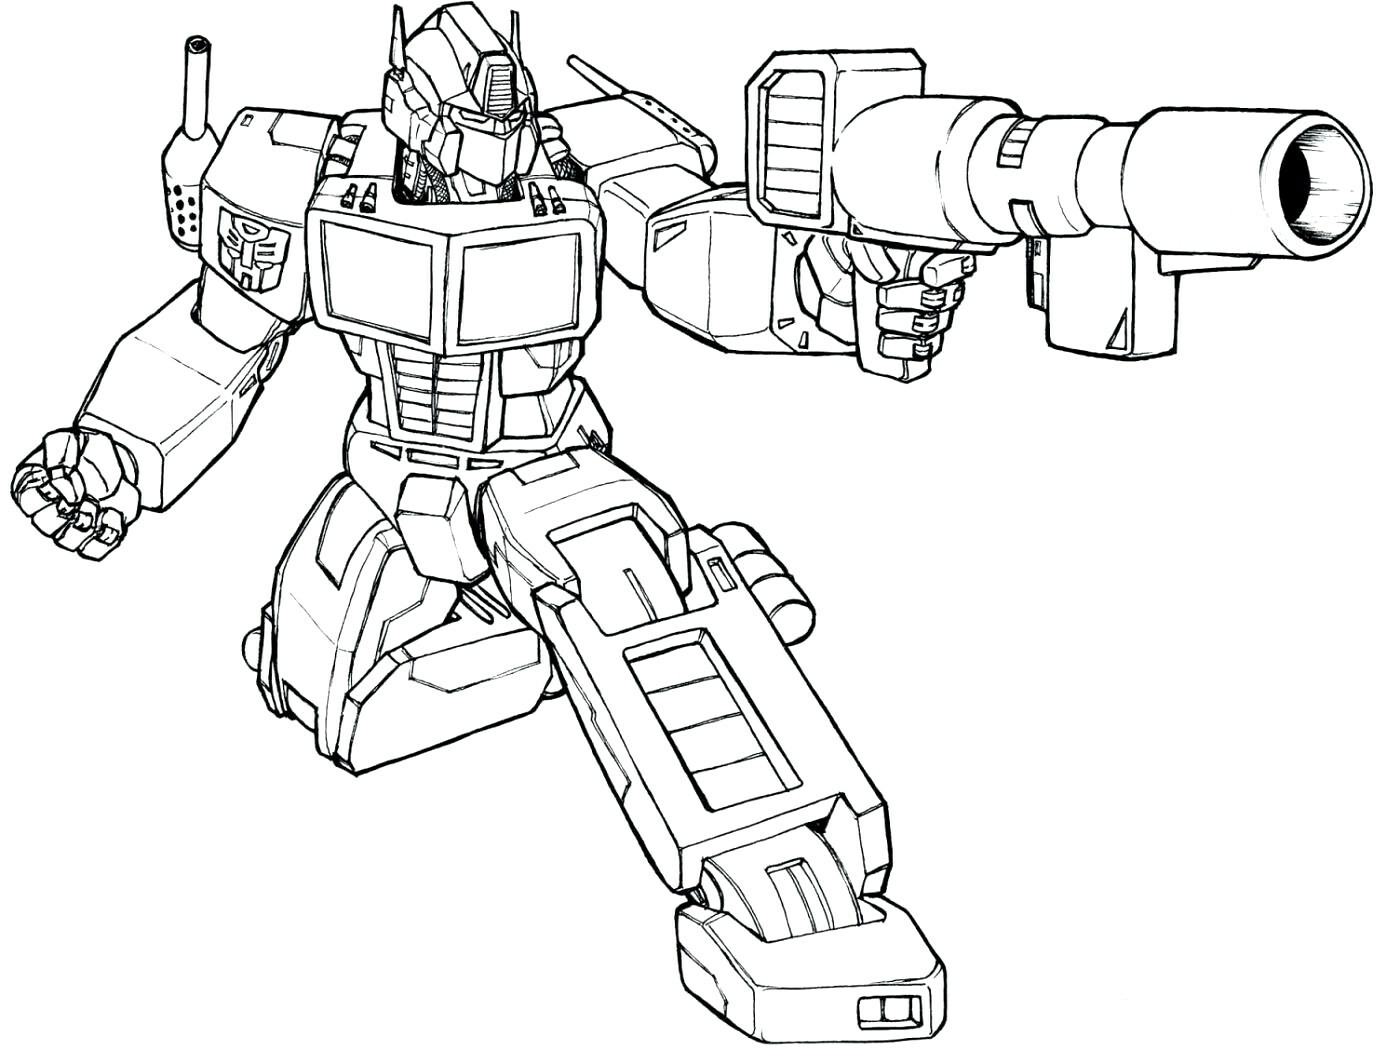 Ausmalbilder Glücksbärchis Inspirierend Best Concept Transformer Coloring Pages Optimus Prime Segr Fotos